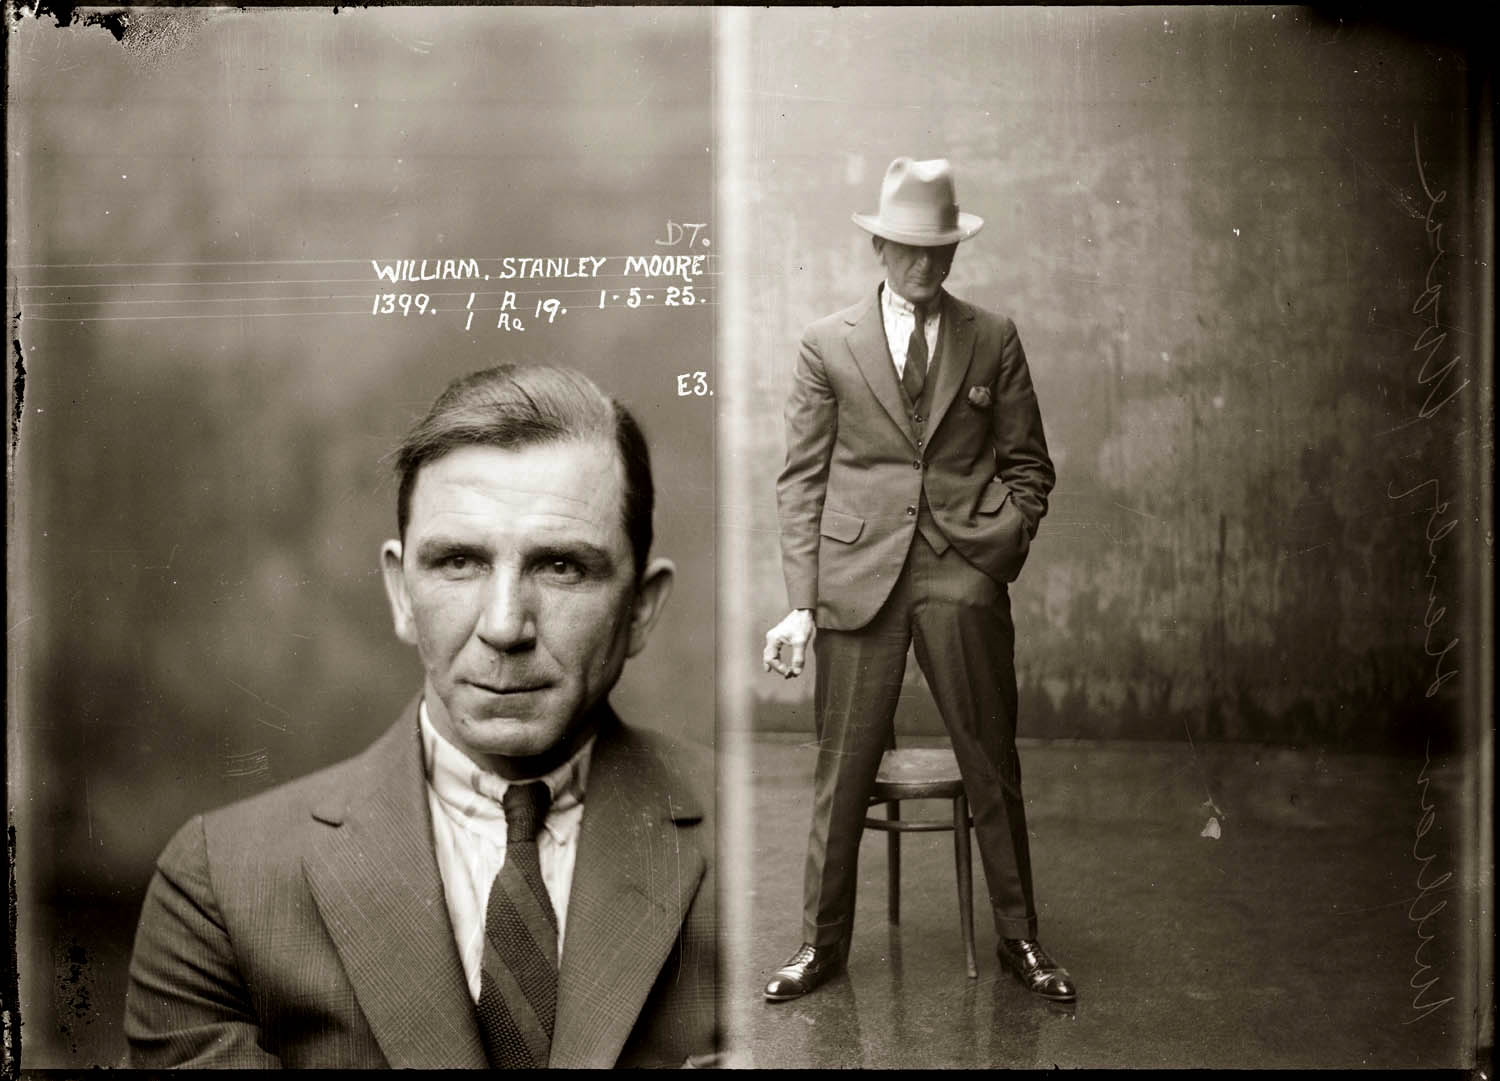 Mug shot of William Stanley Moore taken 1 May 1925, Central cells.